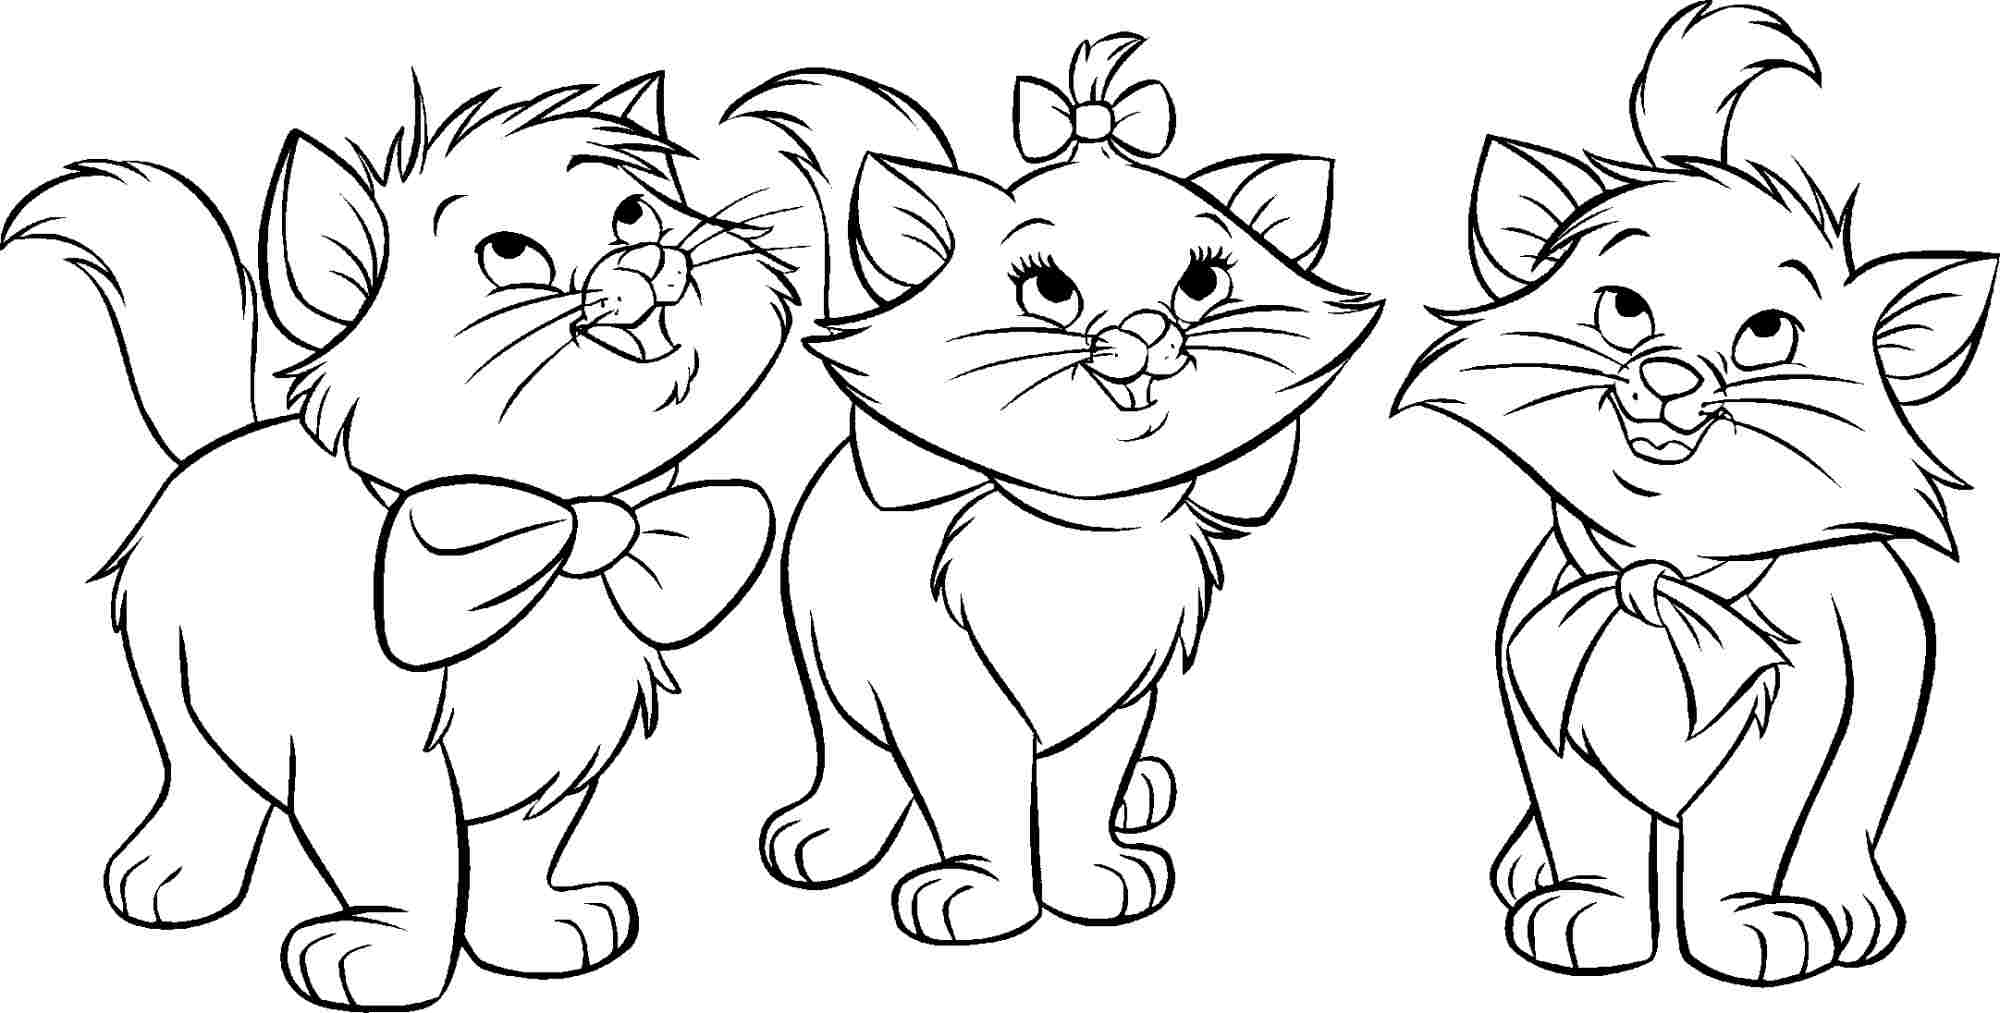 The Aristocats Coloring Pages To Download And Print For Free